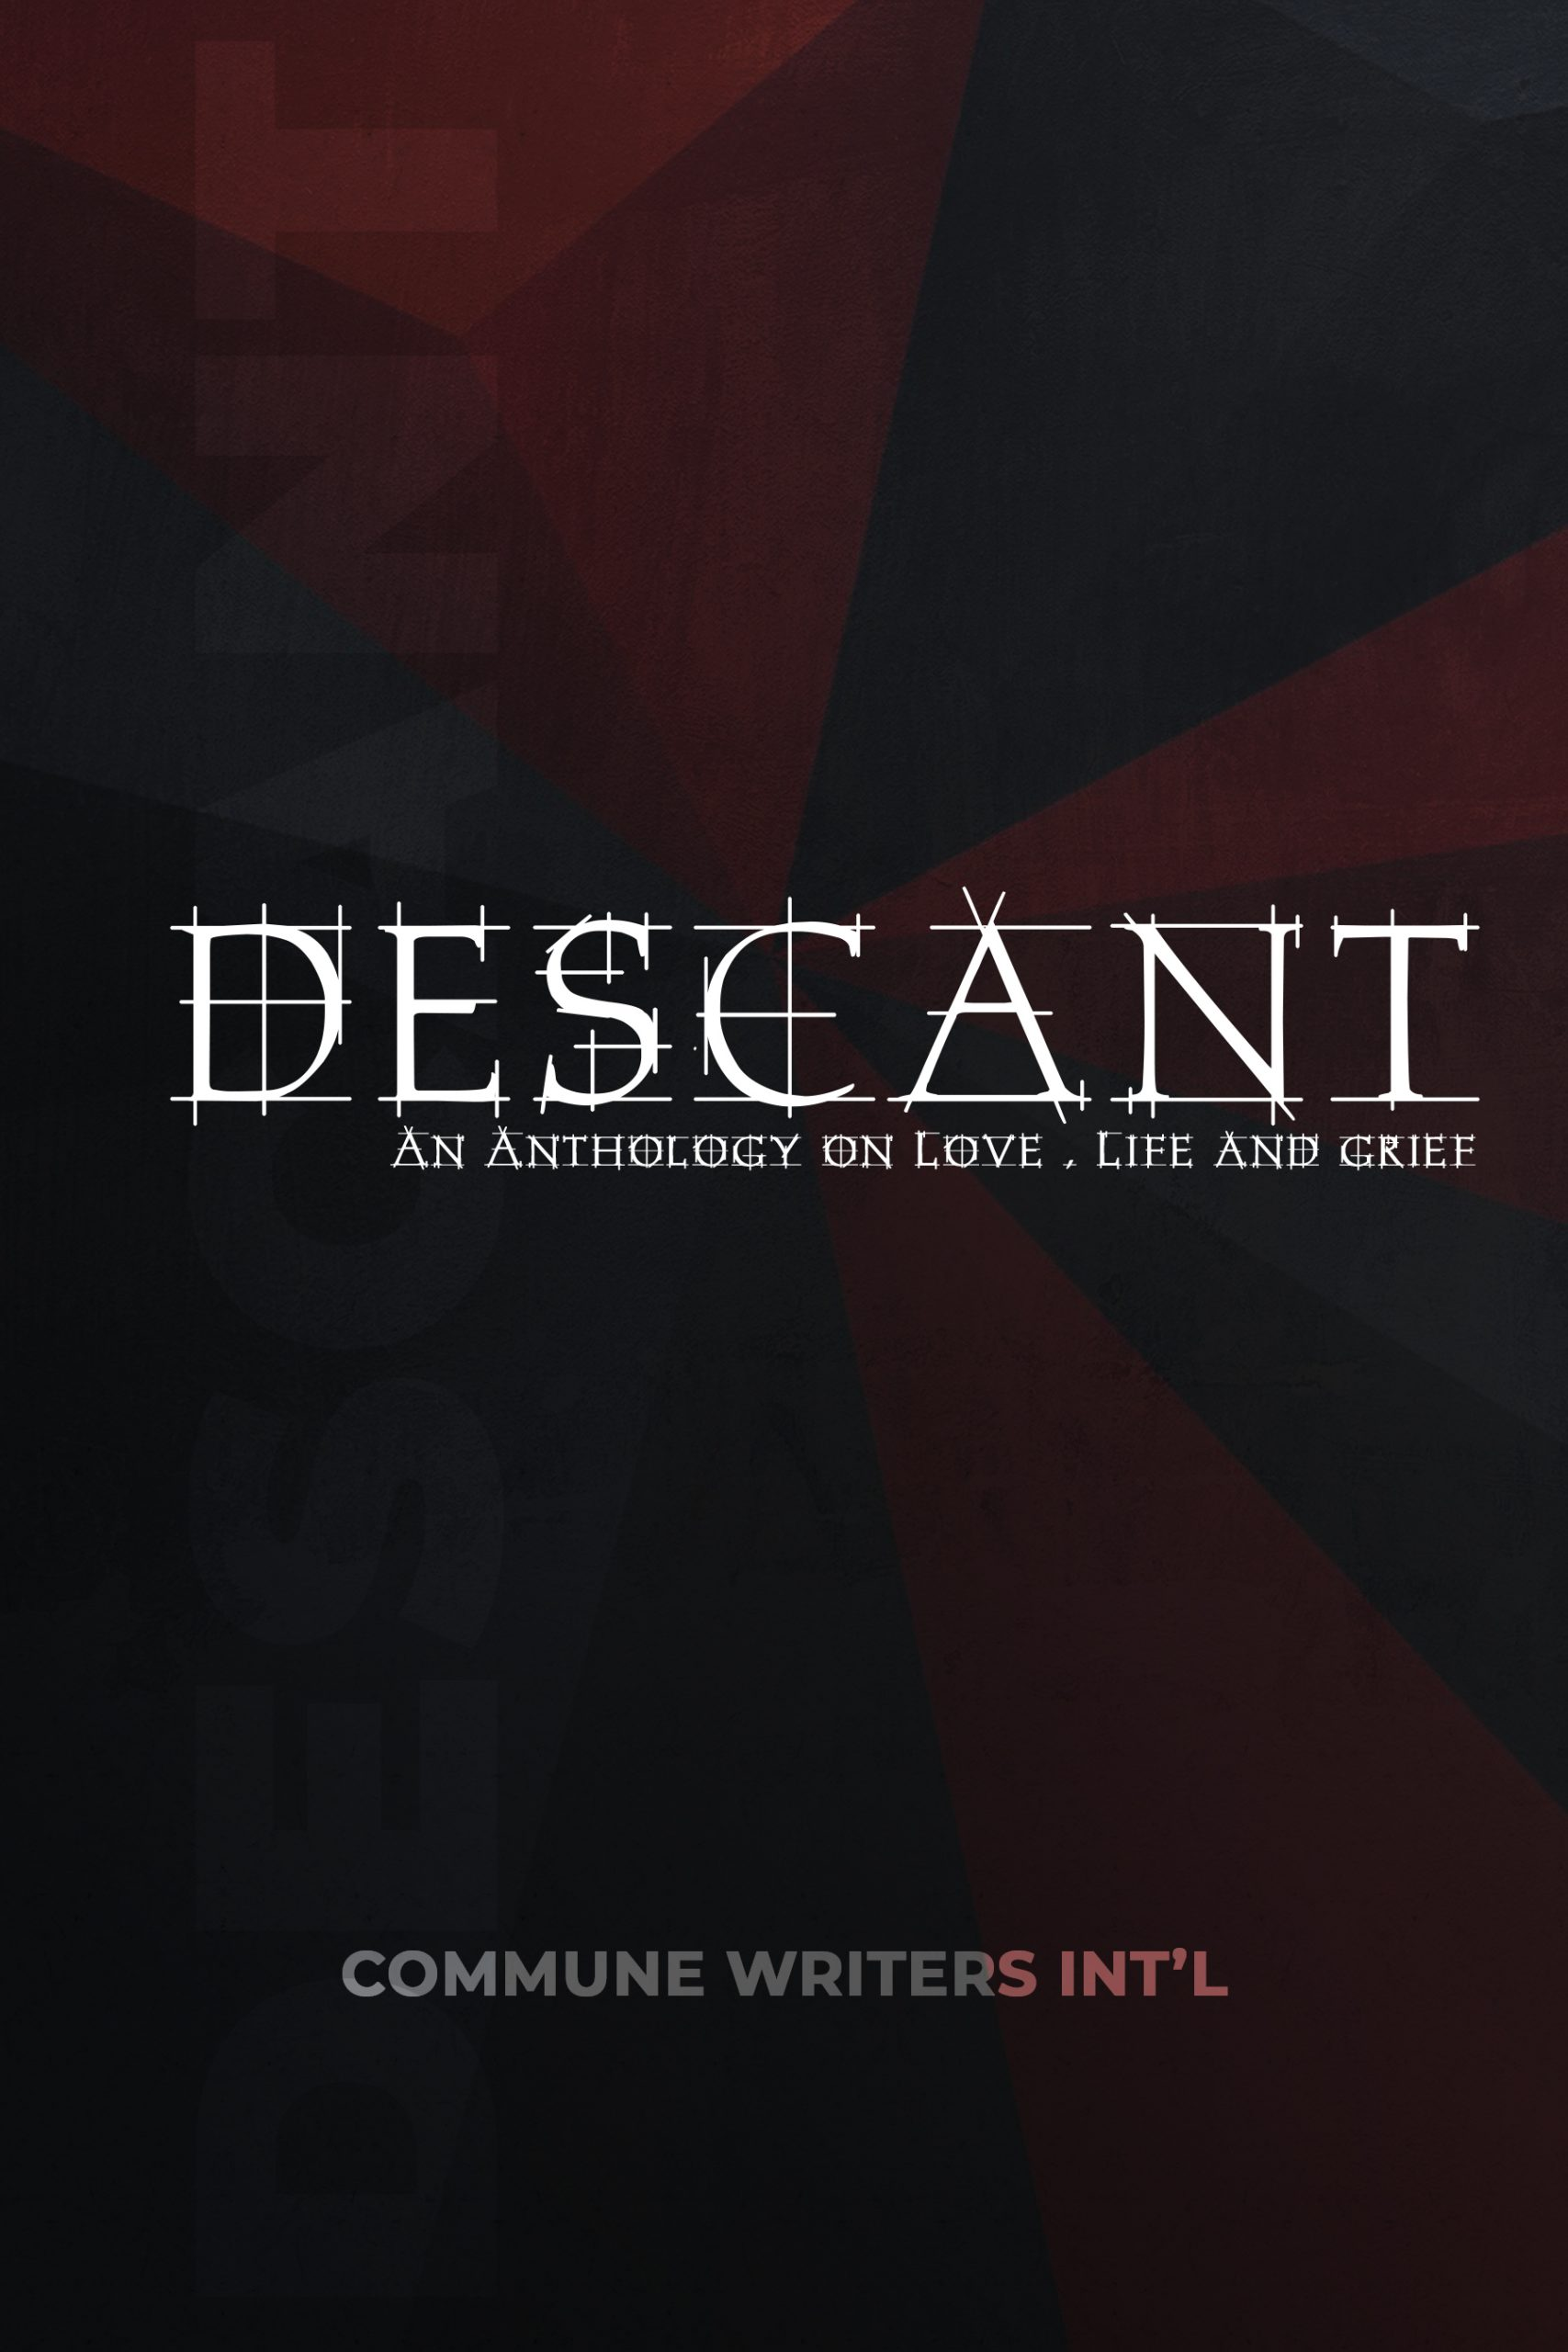 Descant Cover Design